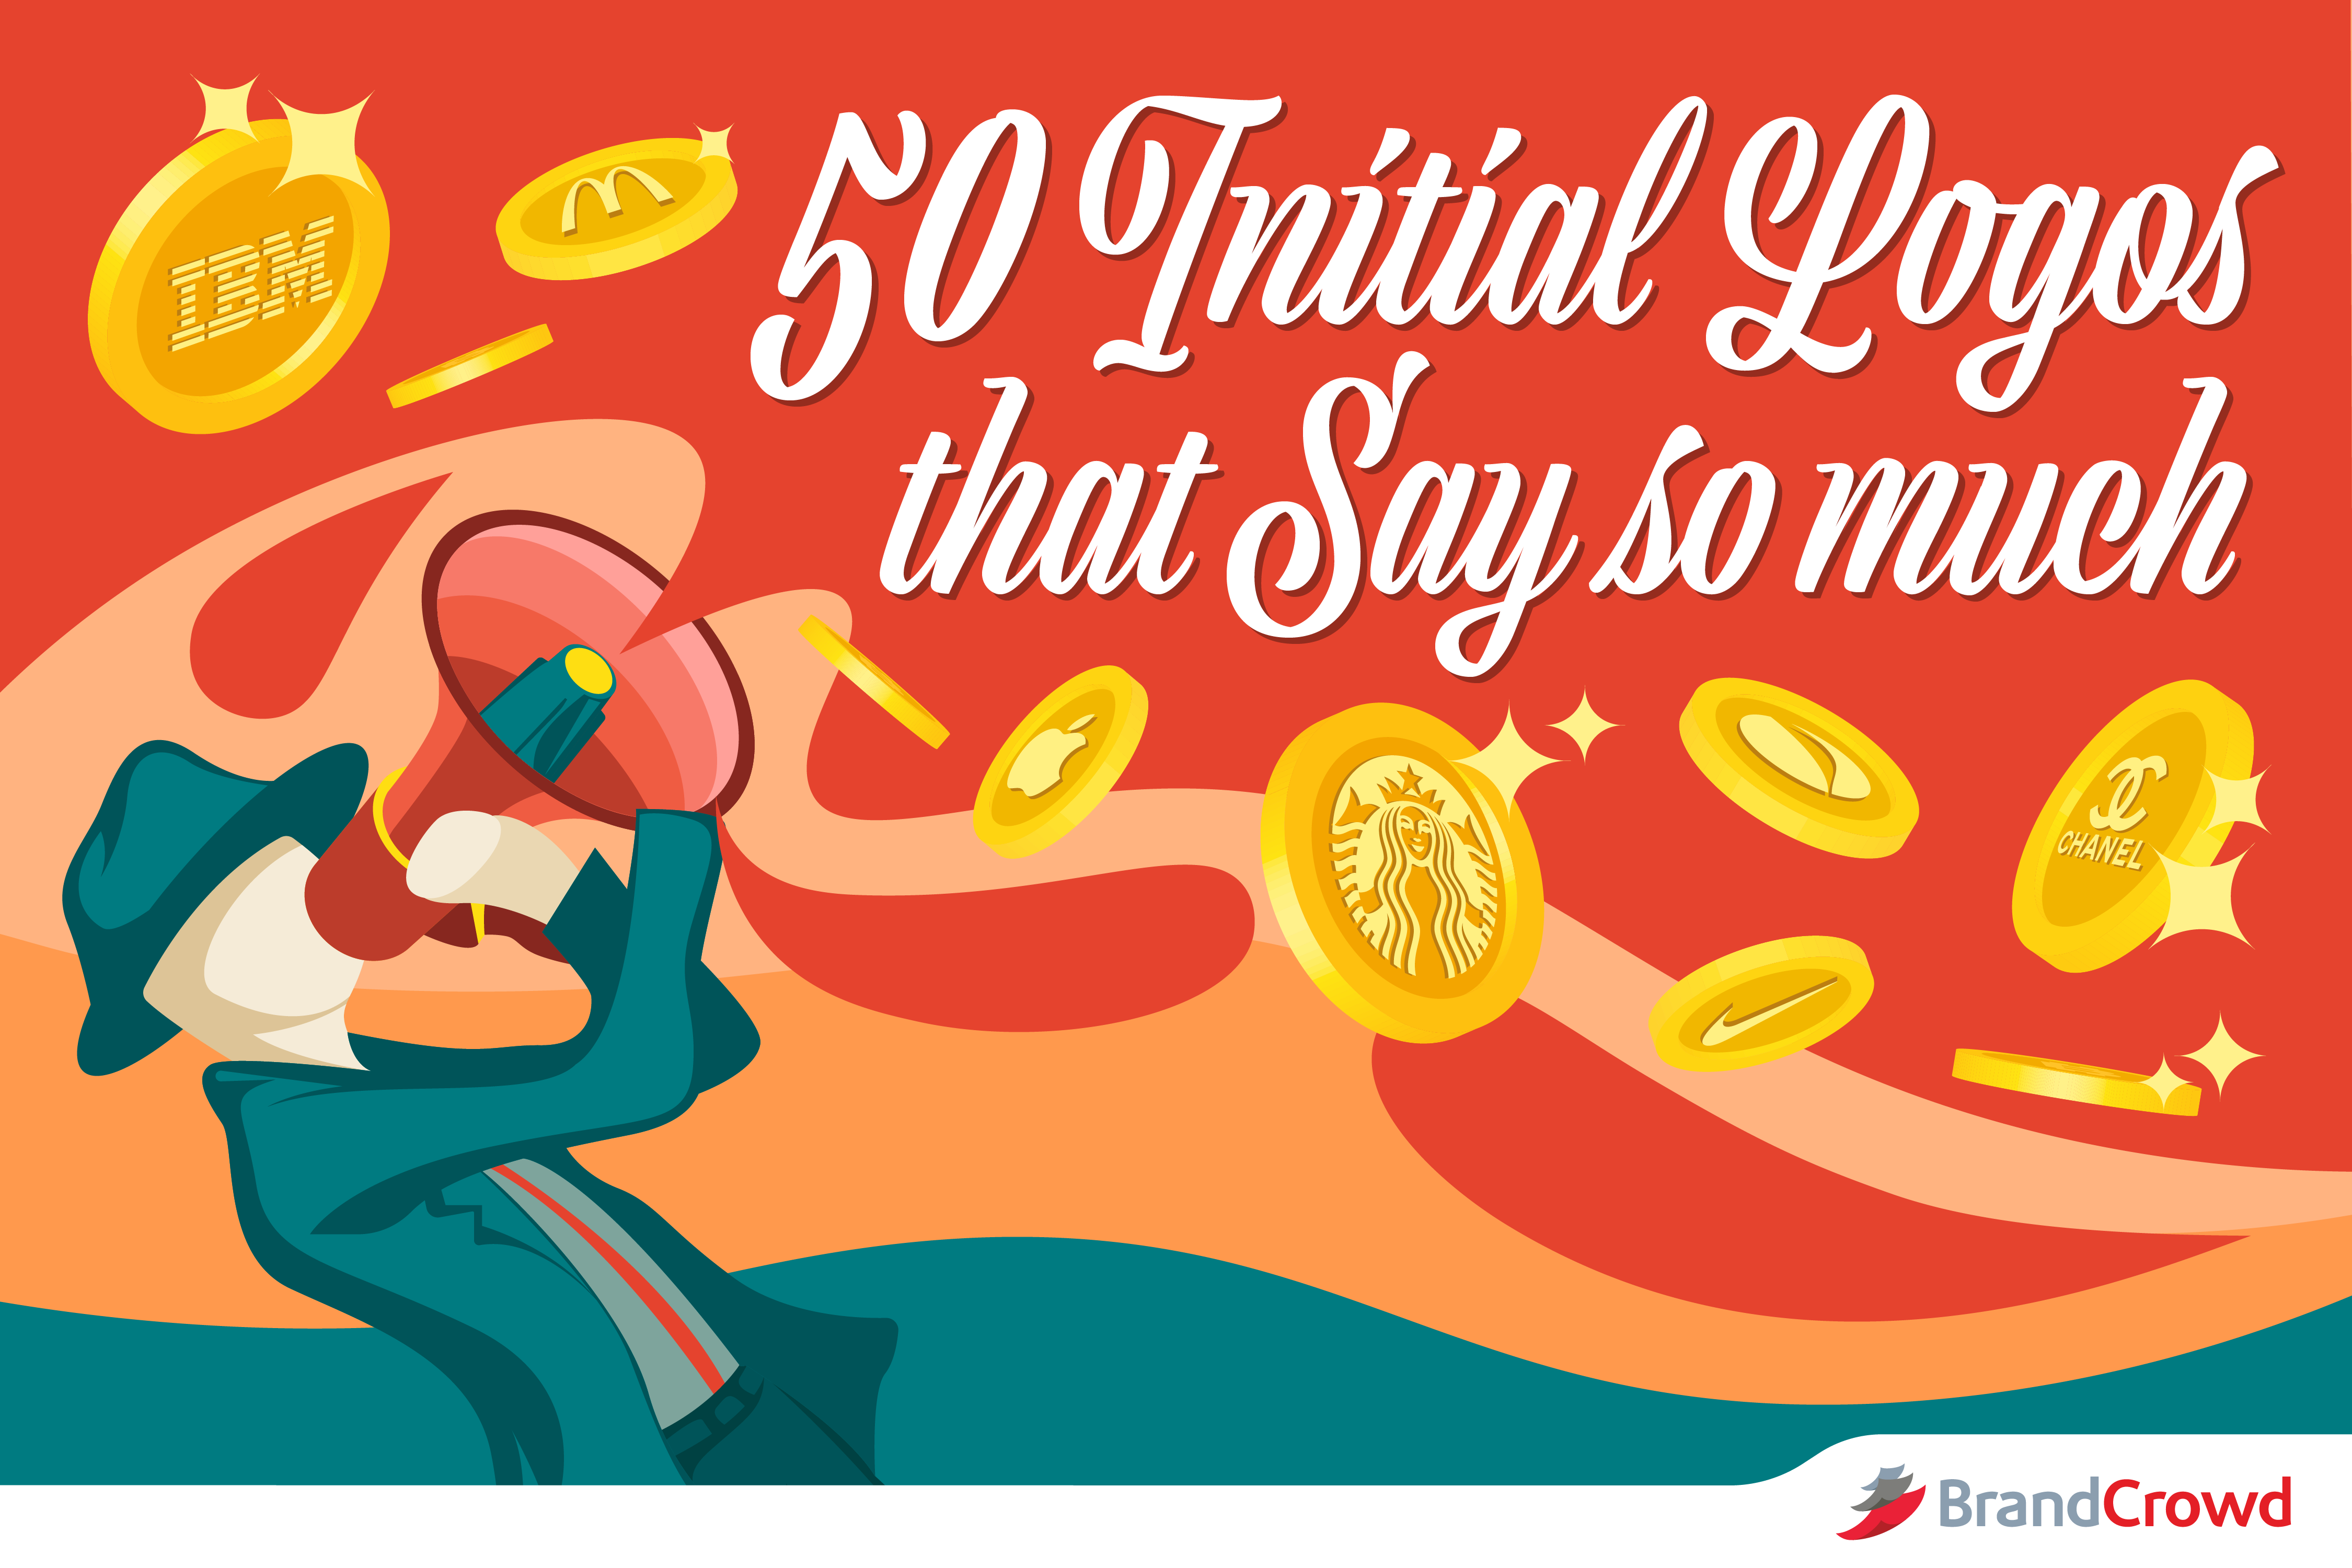 50 Initial Logos That Say So Much - BrandCrowd Blog